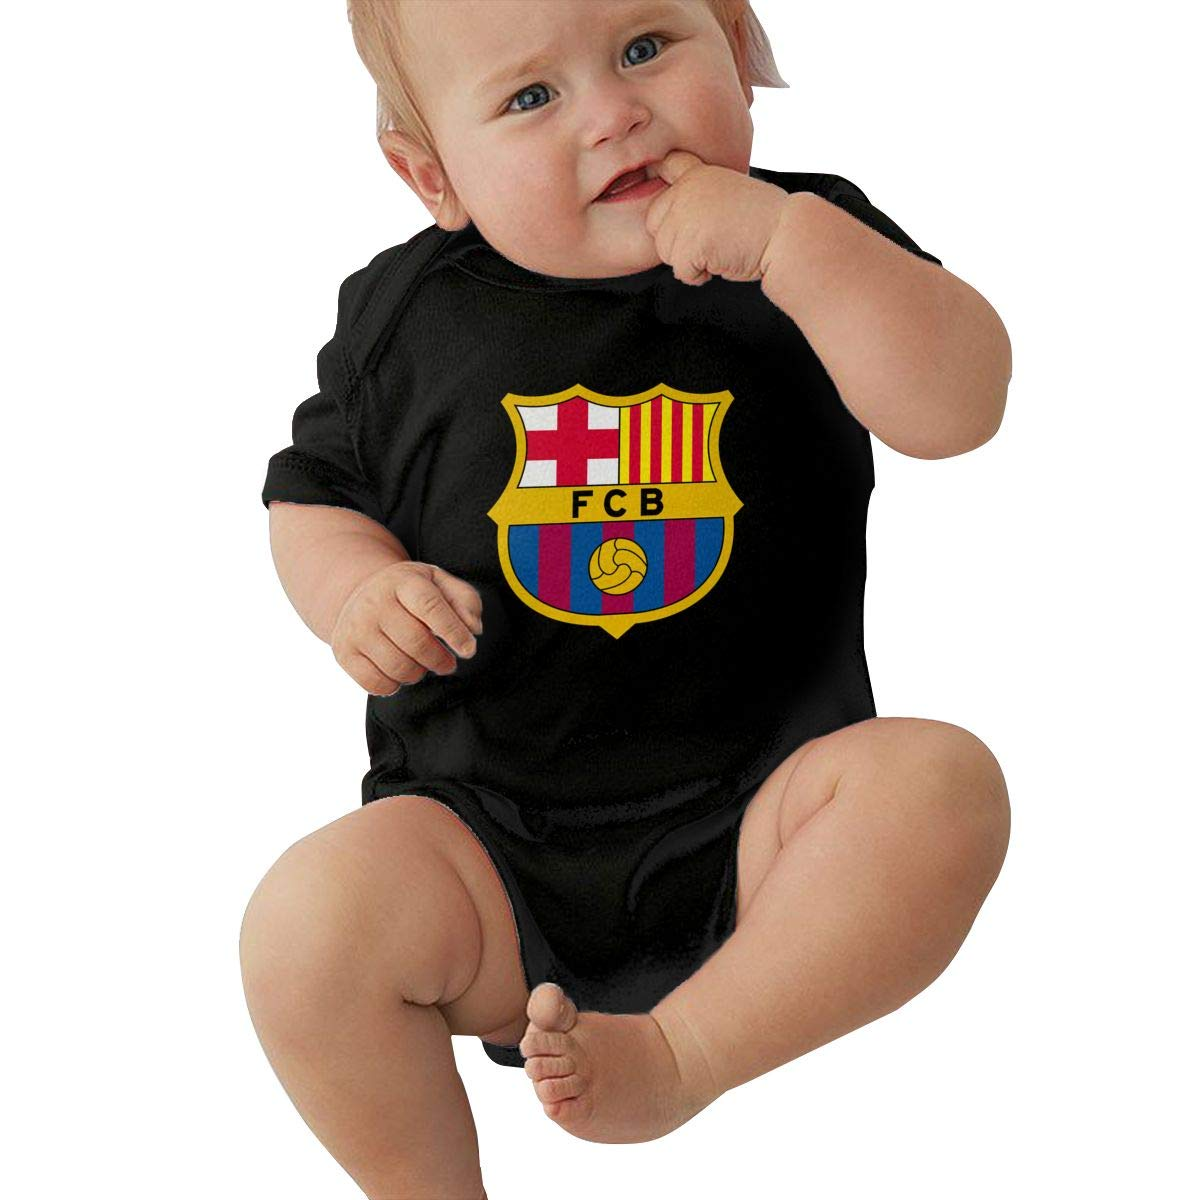 Petersocks Football Club Cotton Bobysuit Onesie Baby Suit for Romper Infant /& Toddler